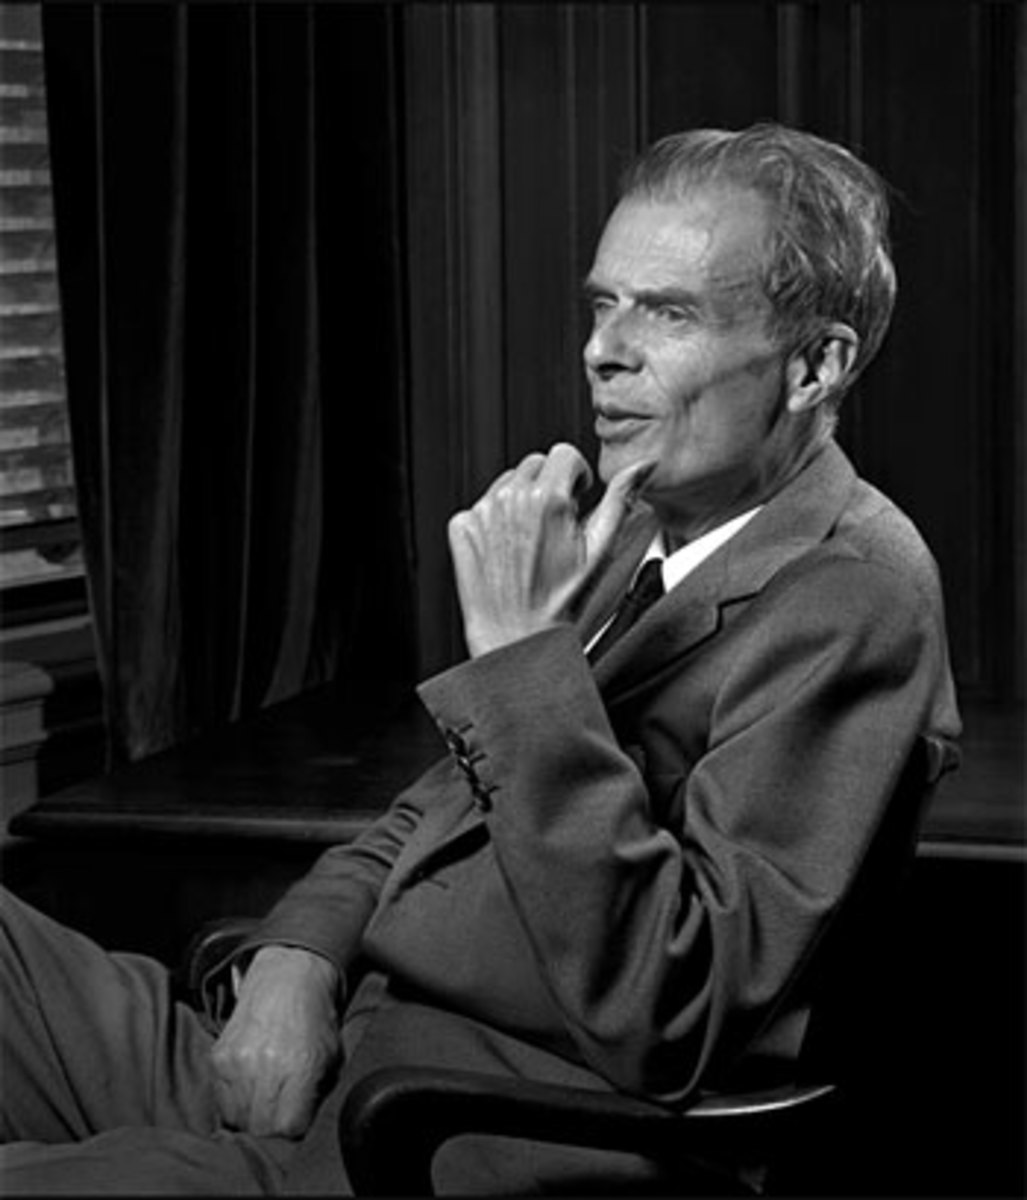 Aldous Huxley and a Fabian Socialist talked about a coming Social Dictatorship